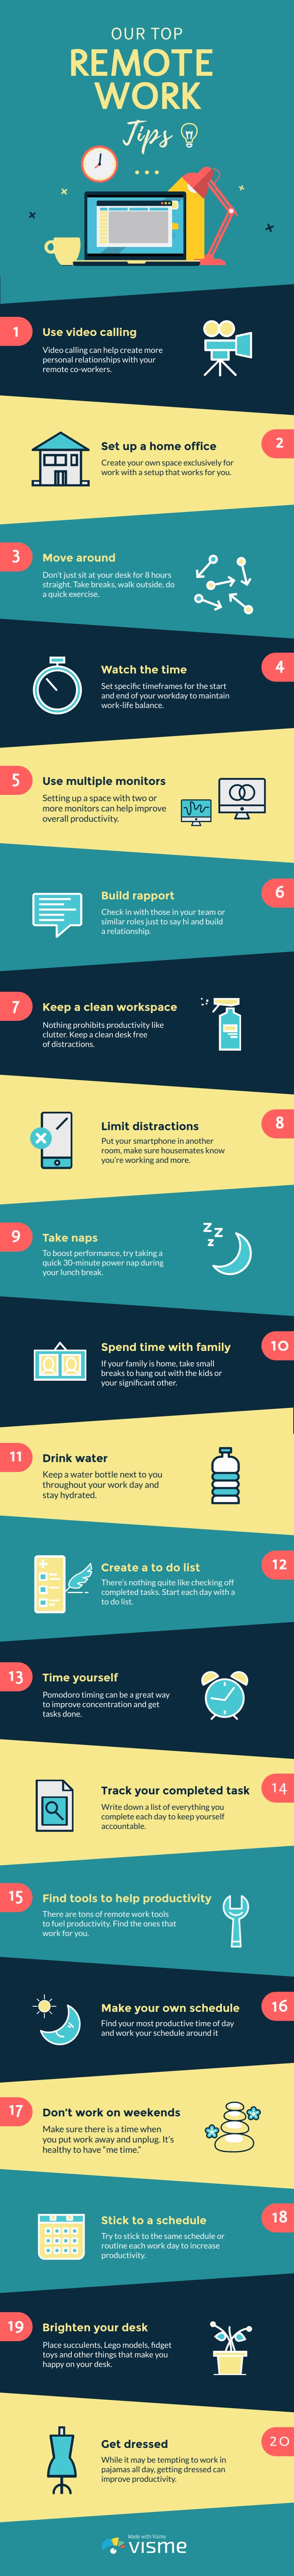 Our Top Remote Work Tips - Infographic Template